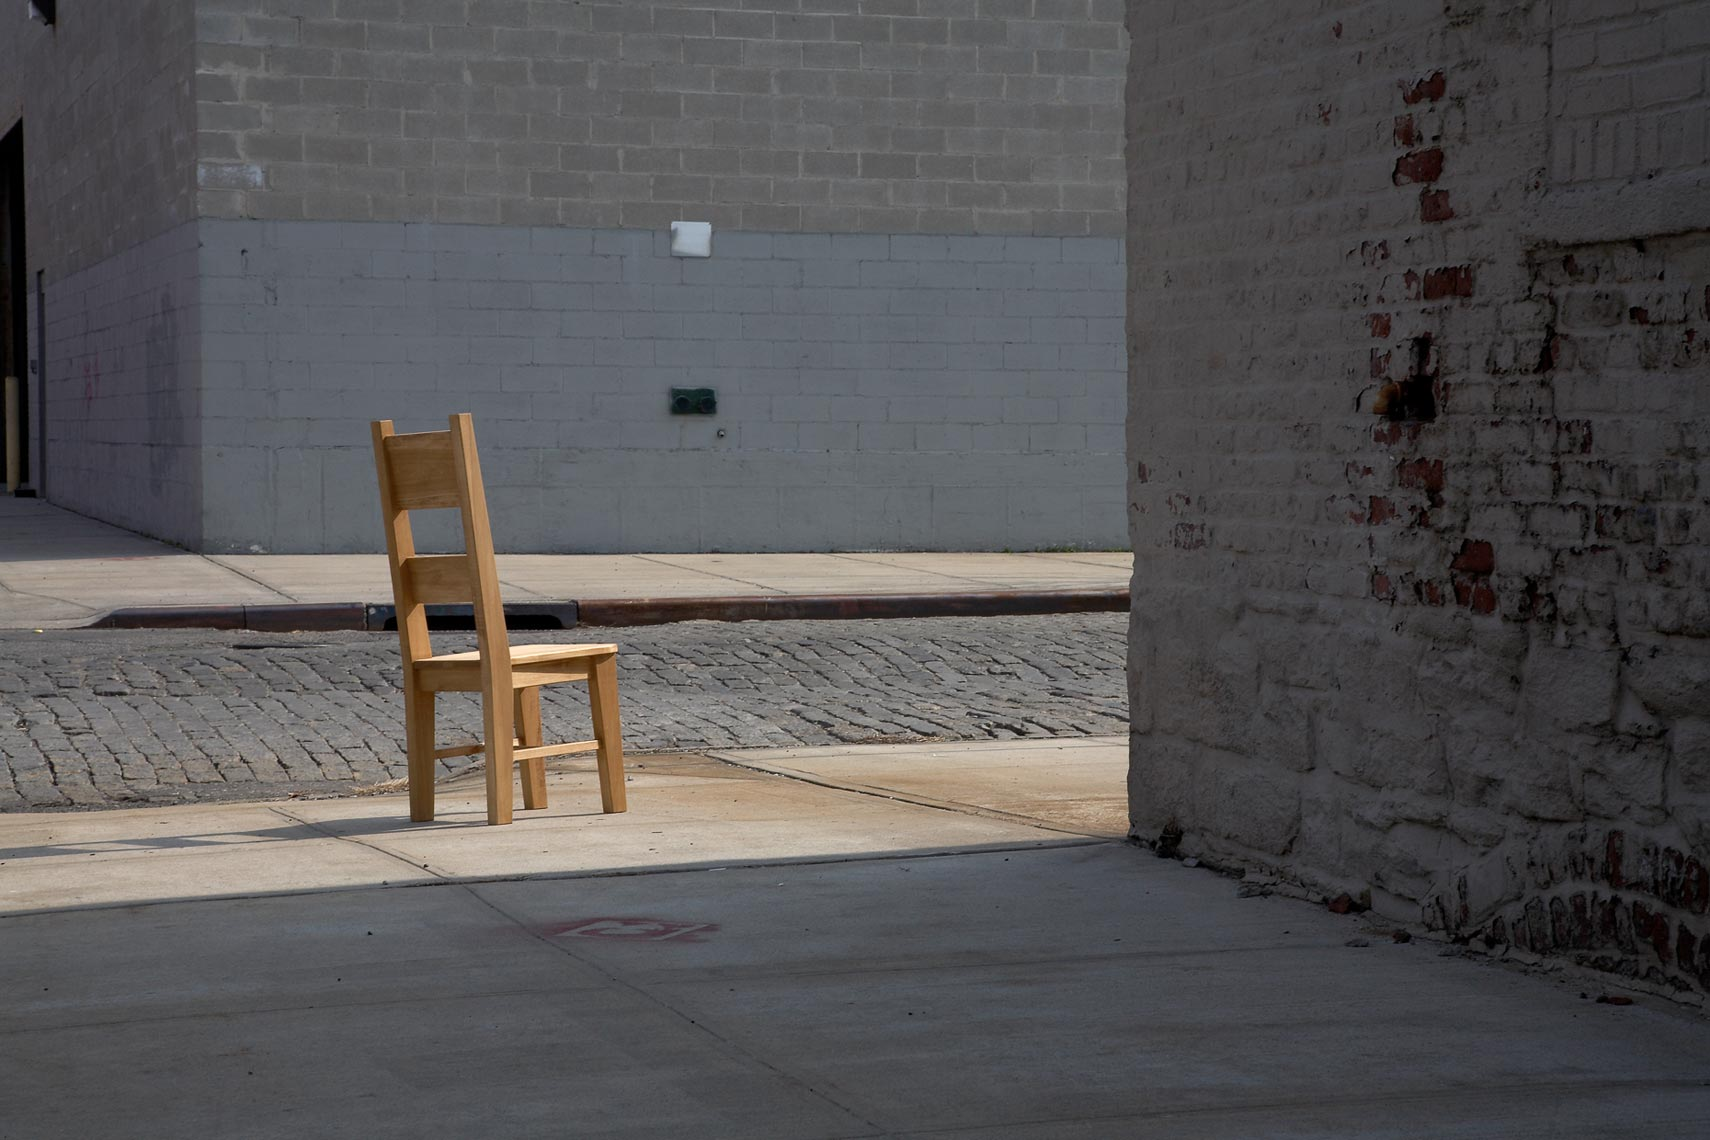 Chair_on_streetcorner.jpg